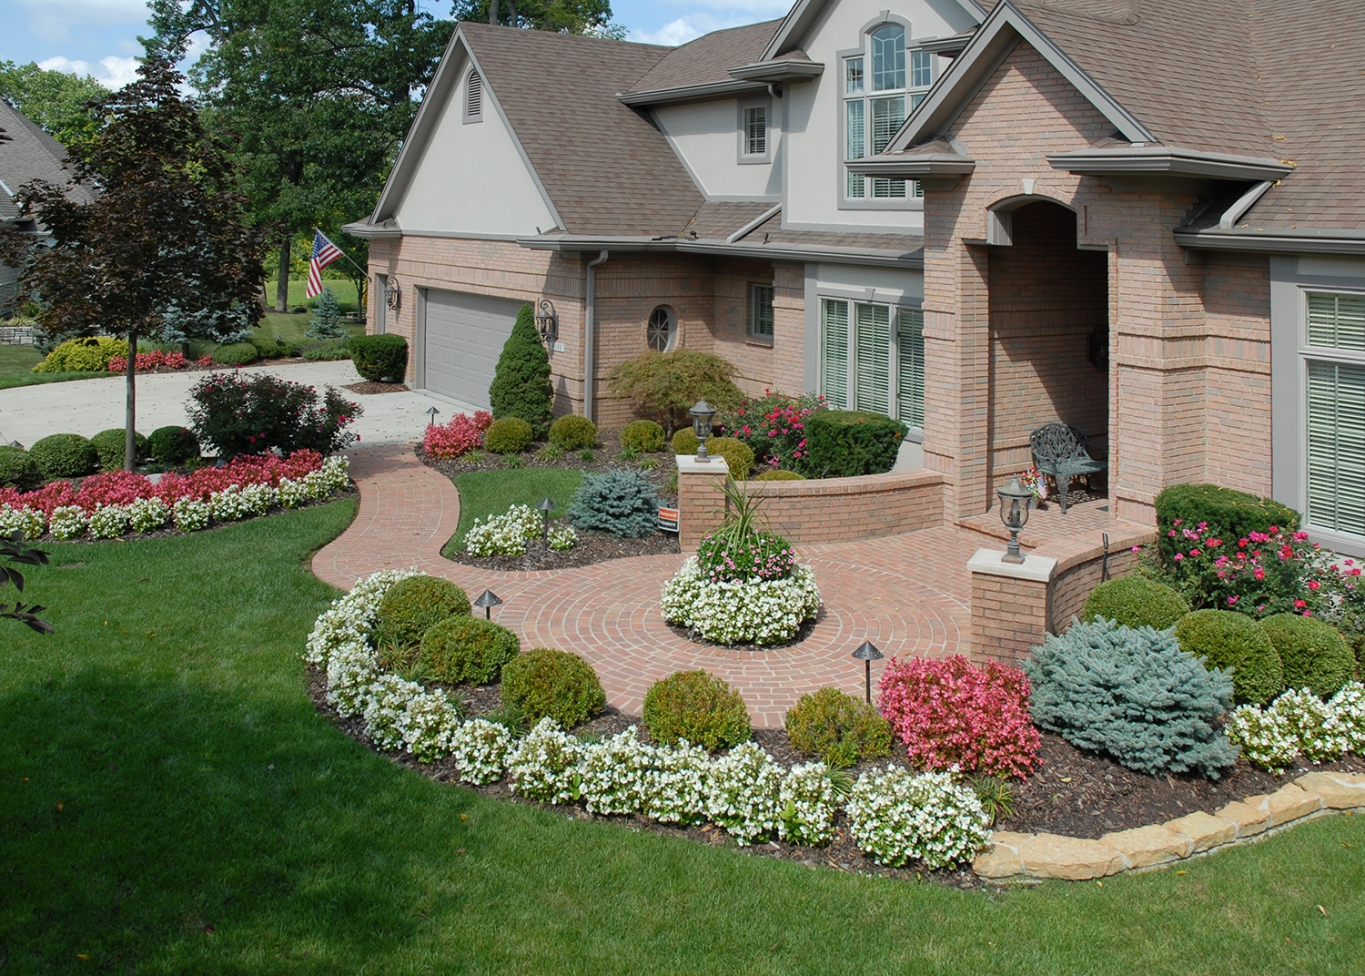 Patios & Walkways - Tinkerturf for Front Yard Landscaping Ideas